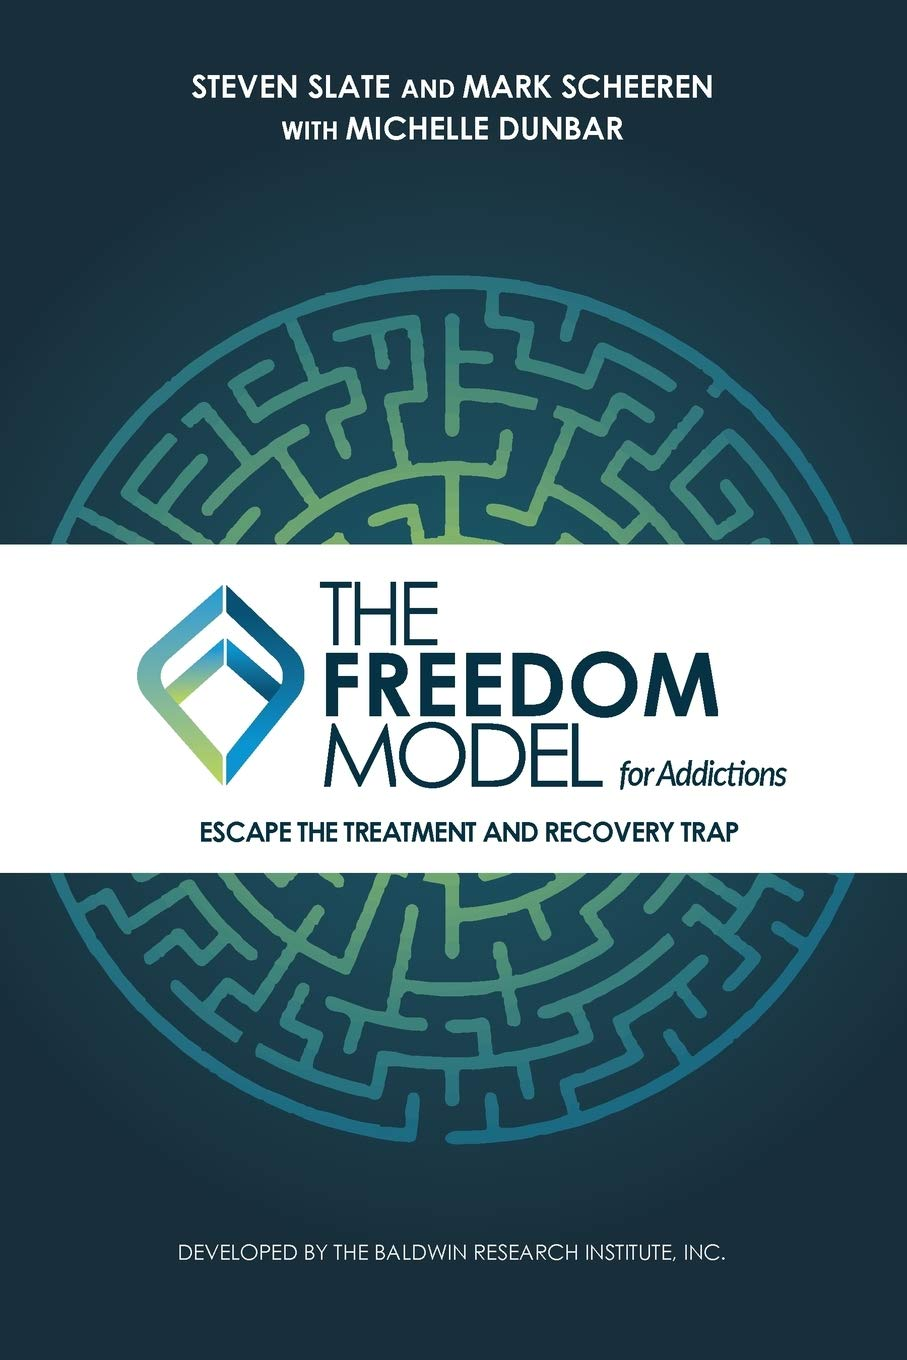 Image OfThe Freedom Model For Addictions: Escape The Treatment And Recovery Trap